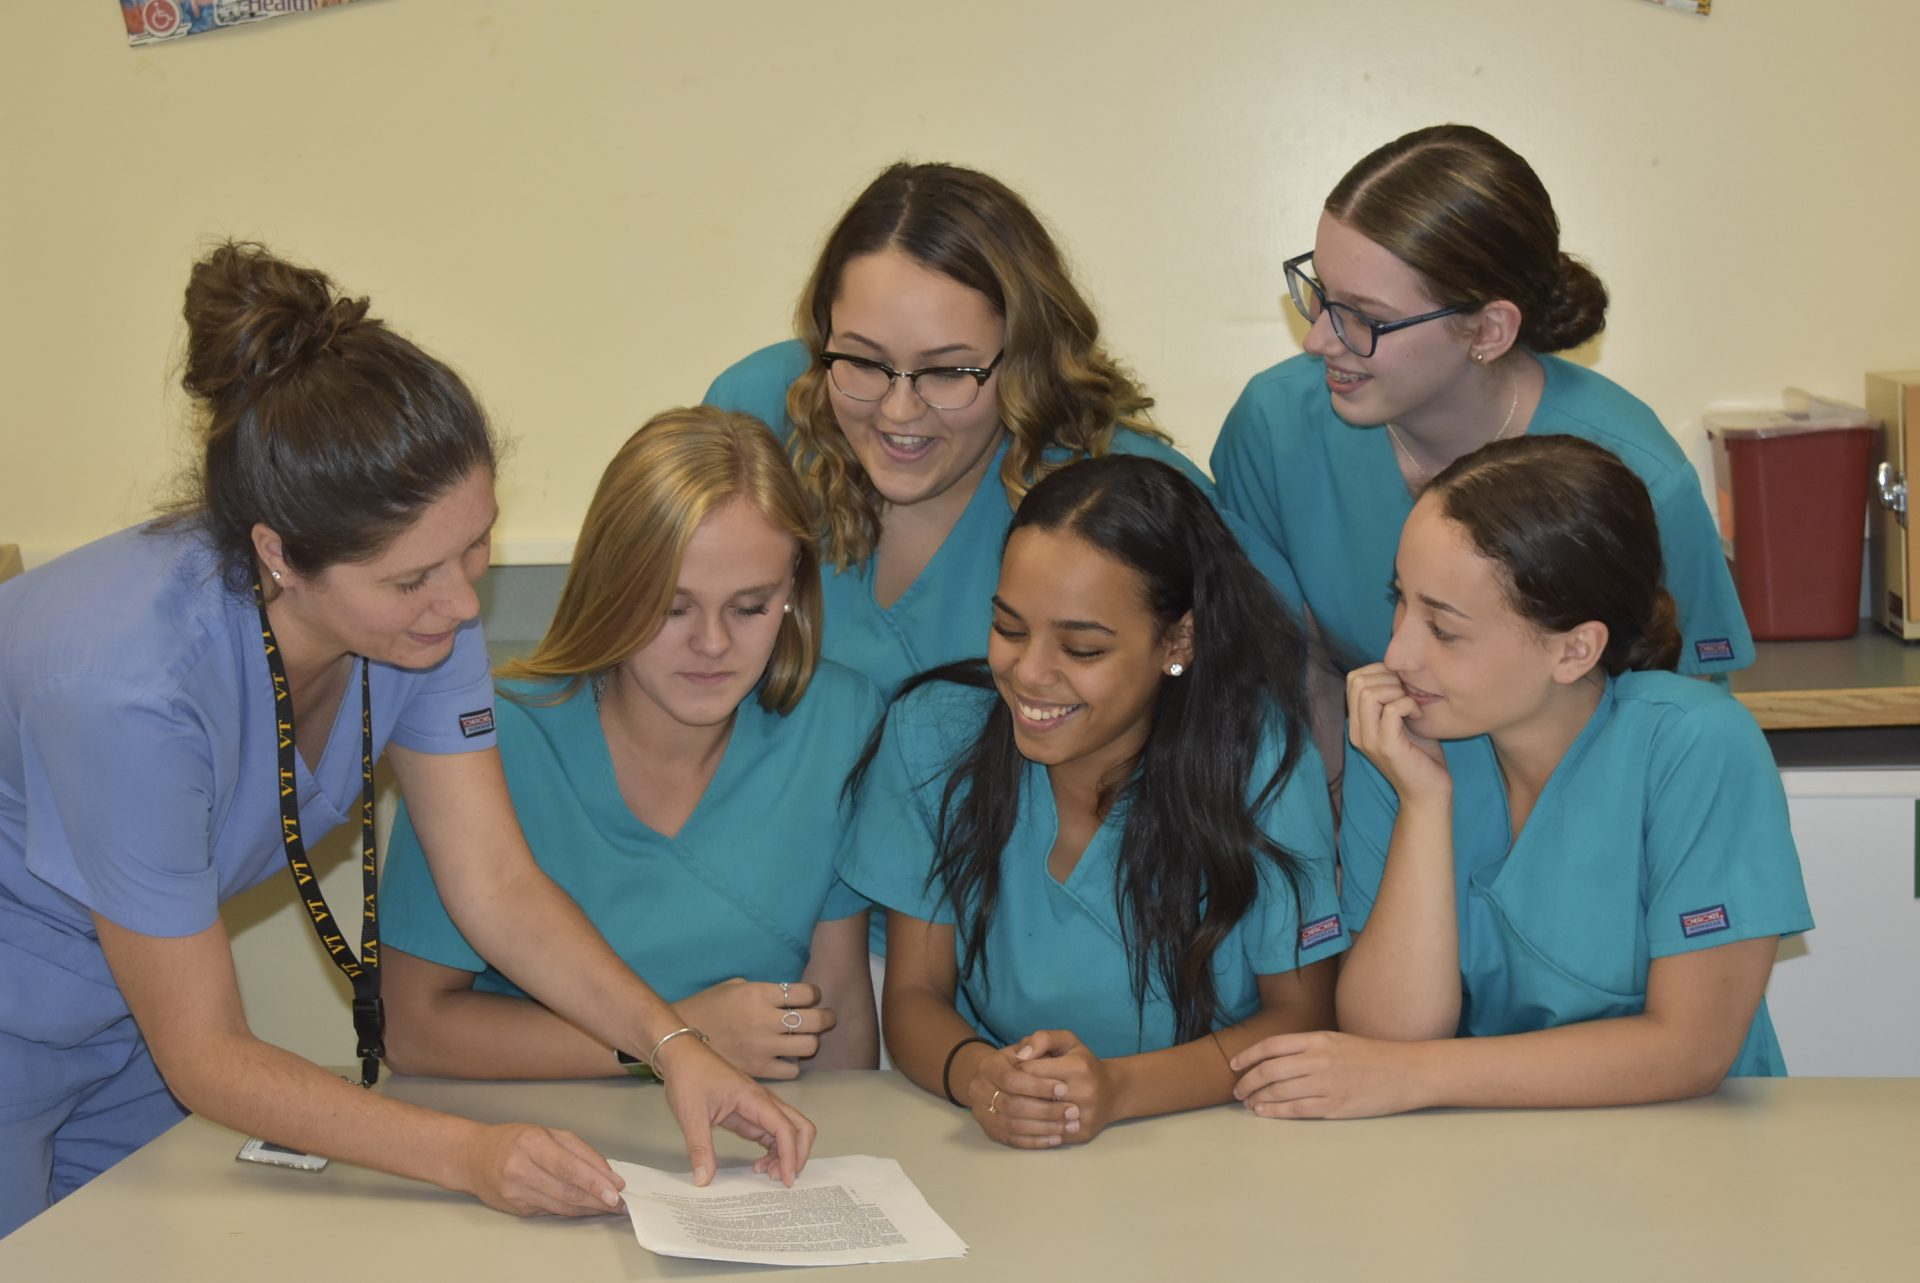 Medical Assisting teacher teaching students